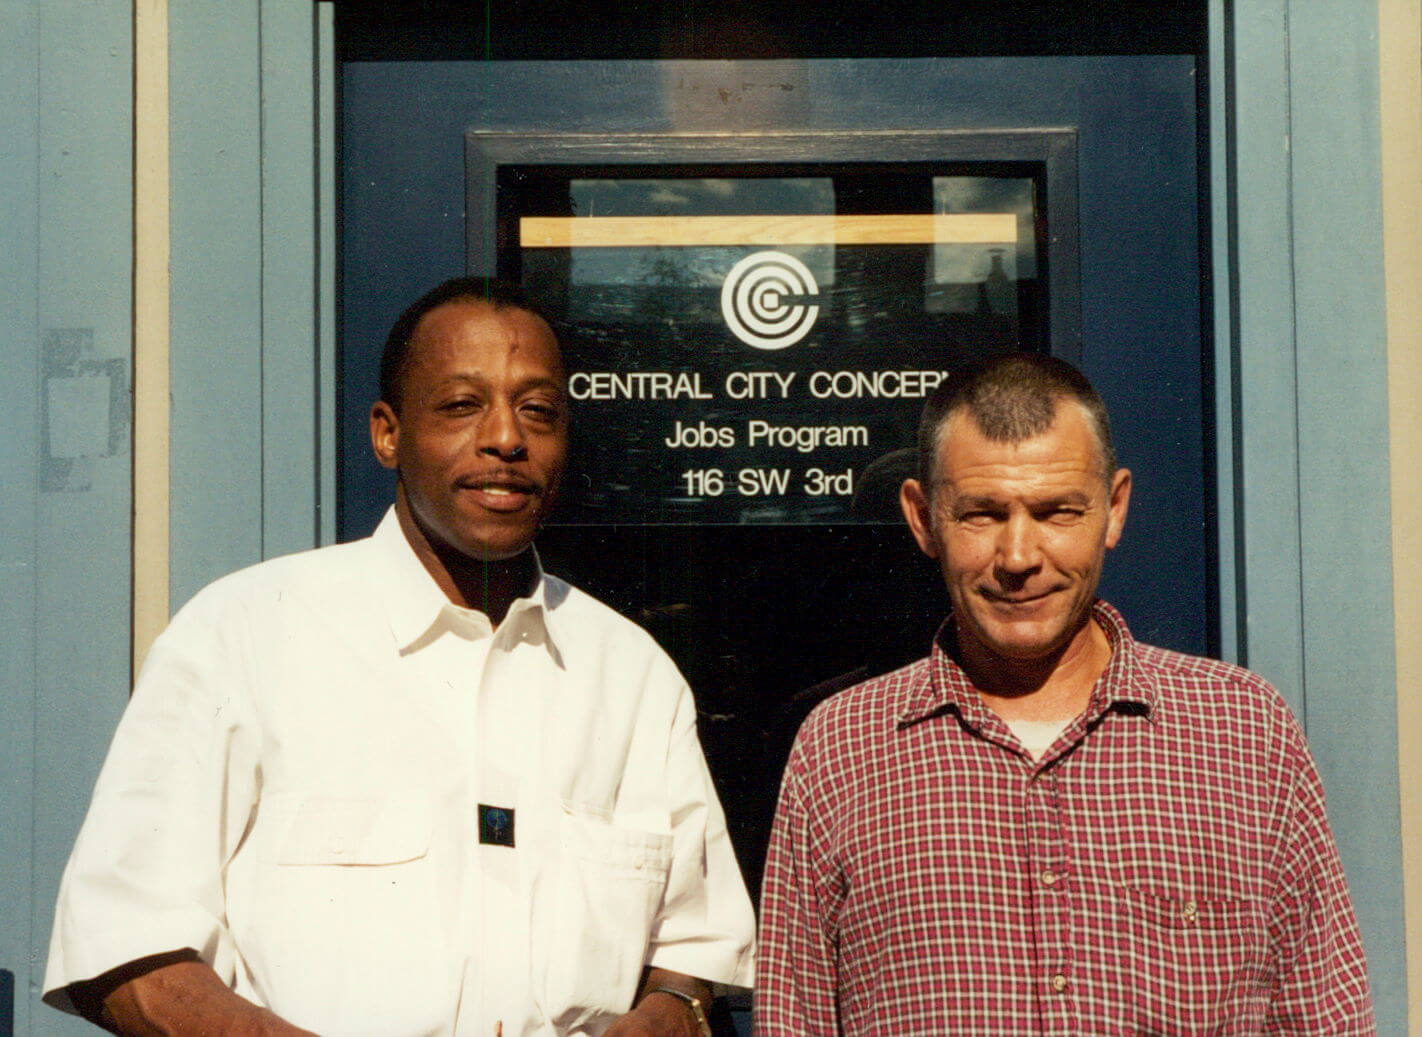 Two men standing in front of CCC jobs program sign in the 90s